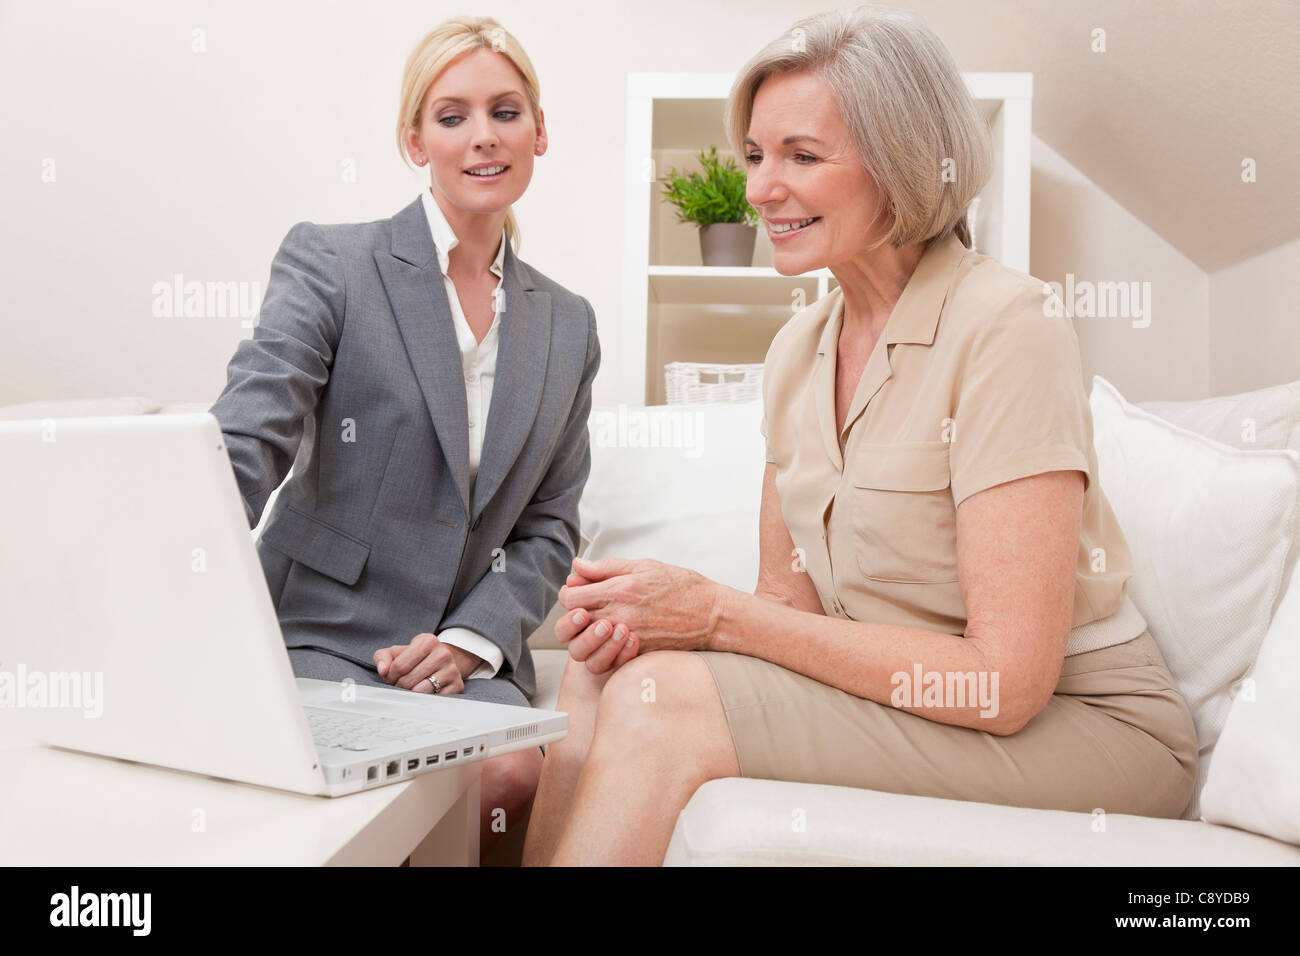 A young saleswoman showing a senior woman medical insurance or pension information on a laptop computer - Stock Image